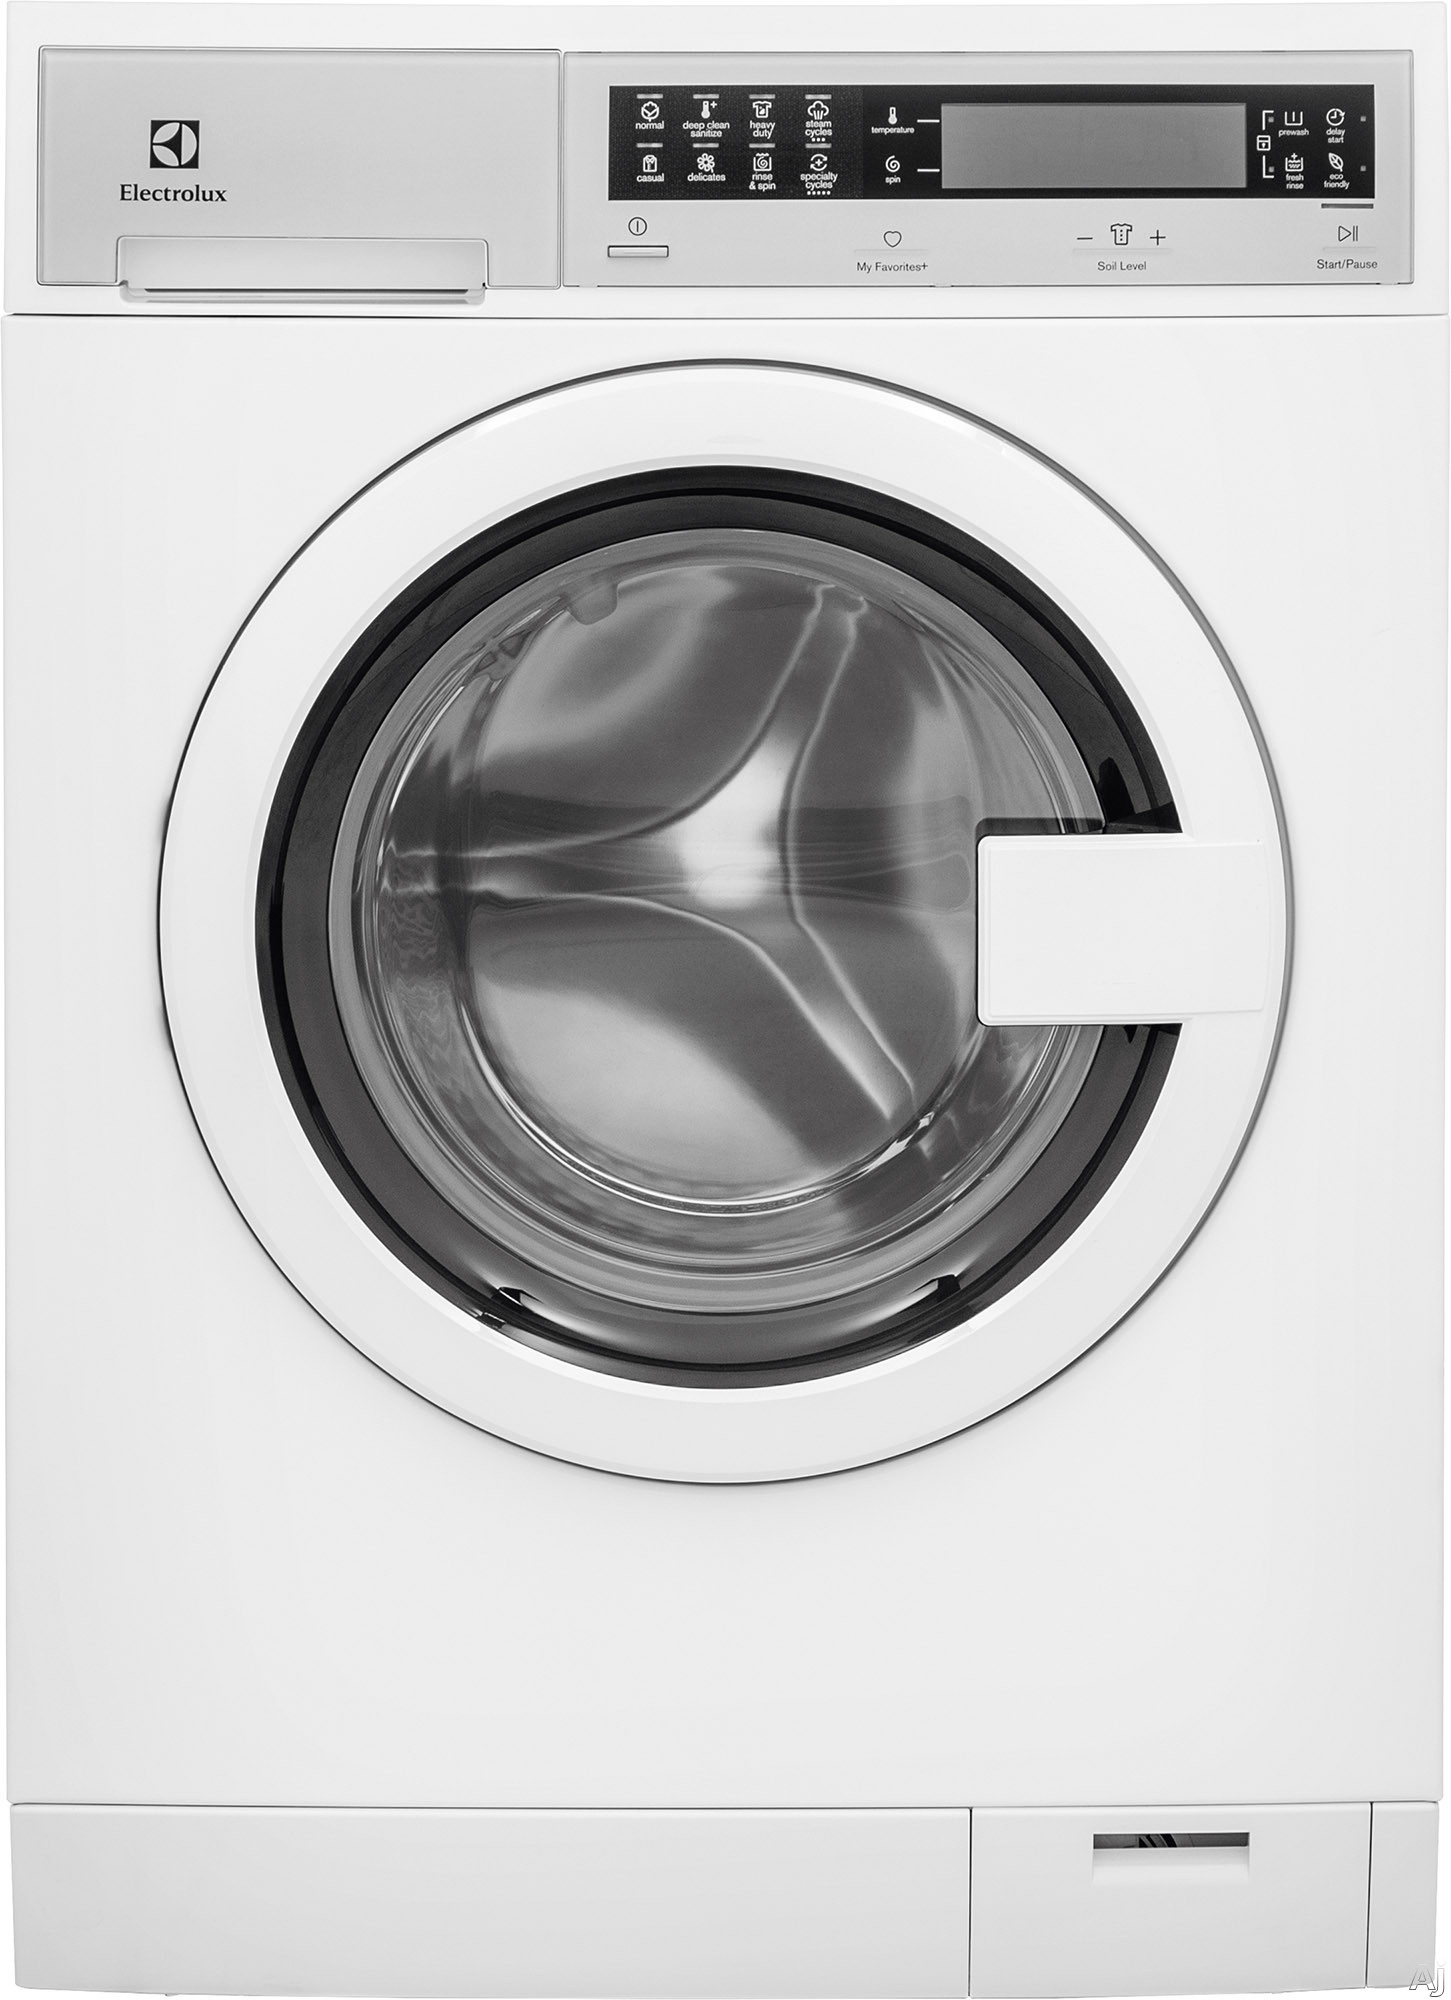 Electrolux EFLS210TI 24 Inch Front Load Washer with Perfect Steam™, ExpertCare™ Wash, IQ-Touch™ Controls, Fast Wash, Sanitized, Luxury-Quiet™, Automatic Water Adjustment, Perfect Balance System®, 14 Cycles, 2.4 cu. ft. and Energy Star® Rated